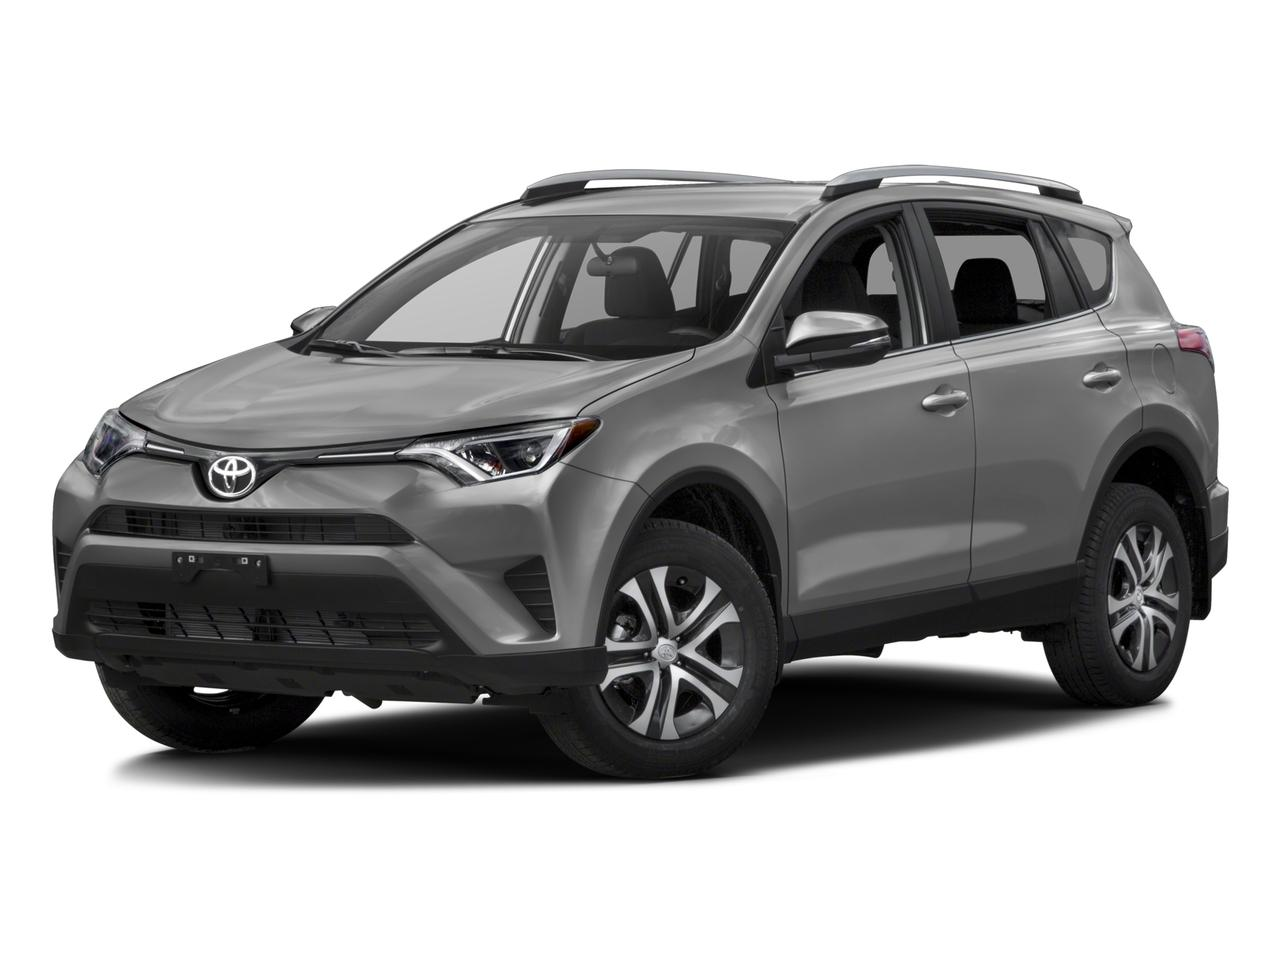 2016 Toyota RAV4 Vehicle Photo in Colorado Springs, CO 80905